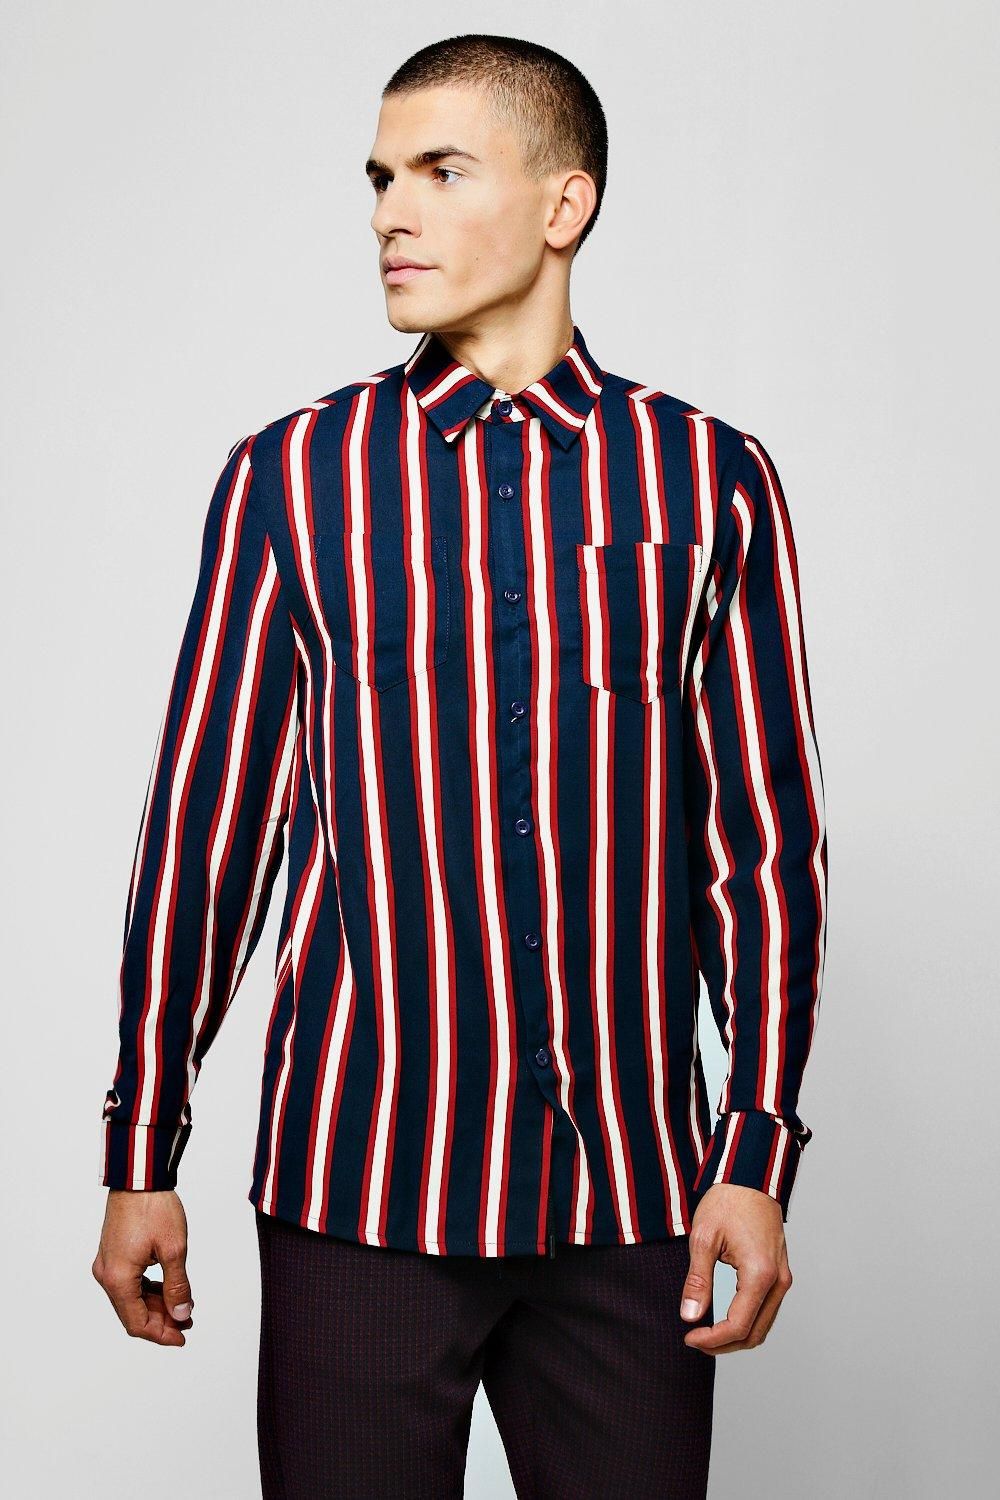 Relaxed Fit Stripe Long Sleeve Shirt